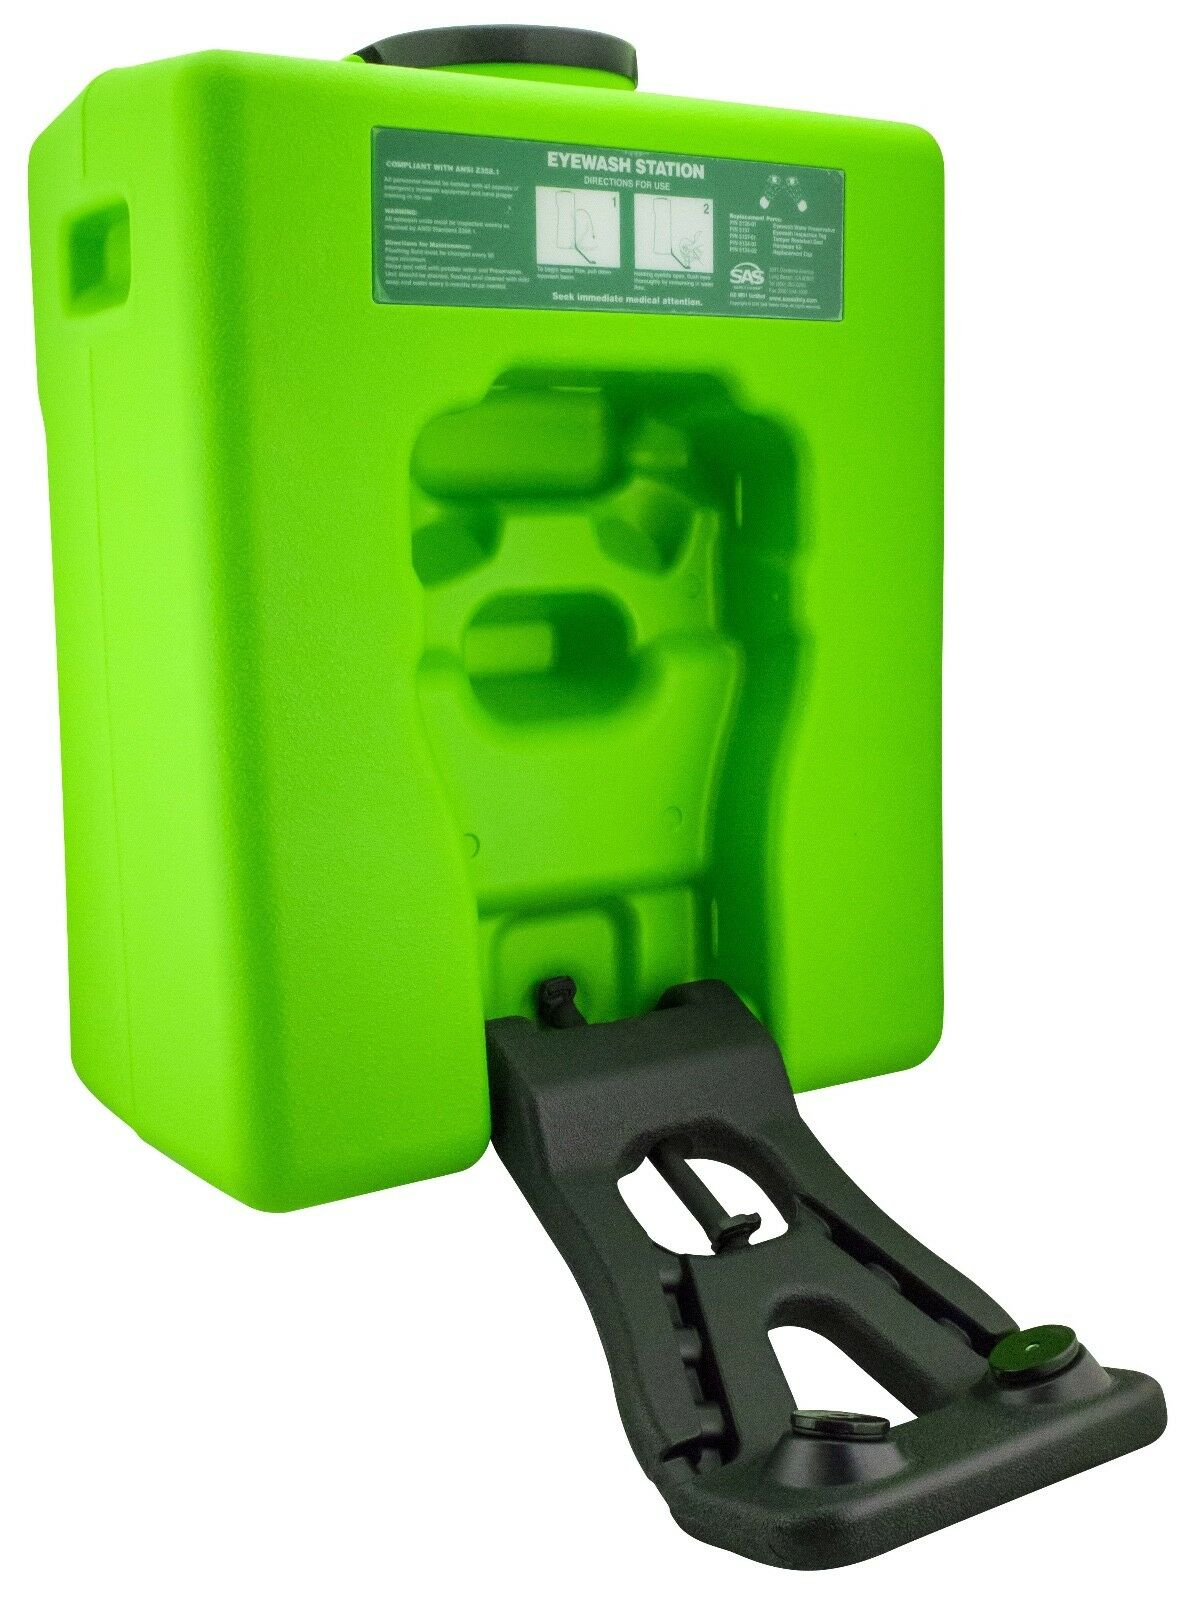 eyewash station sas portable 5134 00 meets osha requirement 1 of 1free shipping - Eye Wash Station Osha